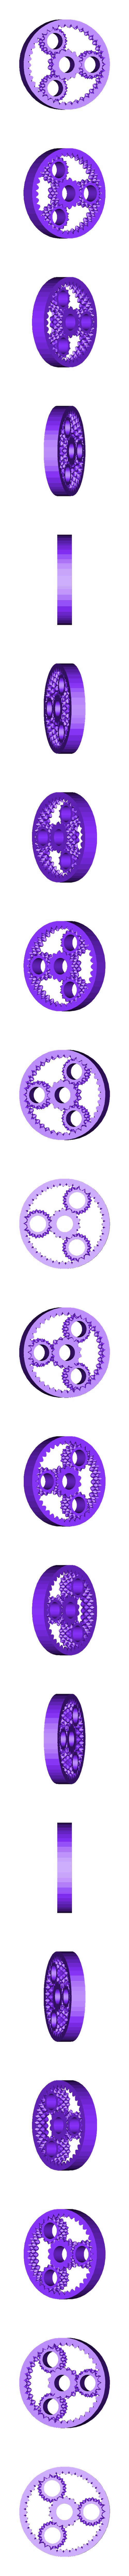 13x13 FractalPlanetary1-120Degree-Whole.stl Download free STL file Fractal Gear Bearing and Planetary • Object to 3D print, FractalGears